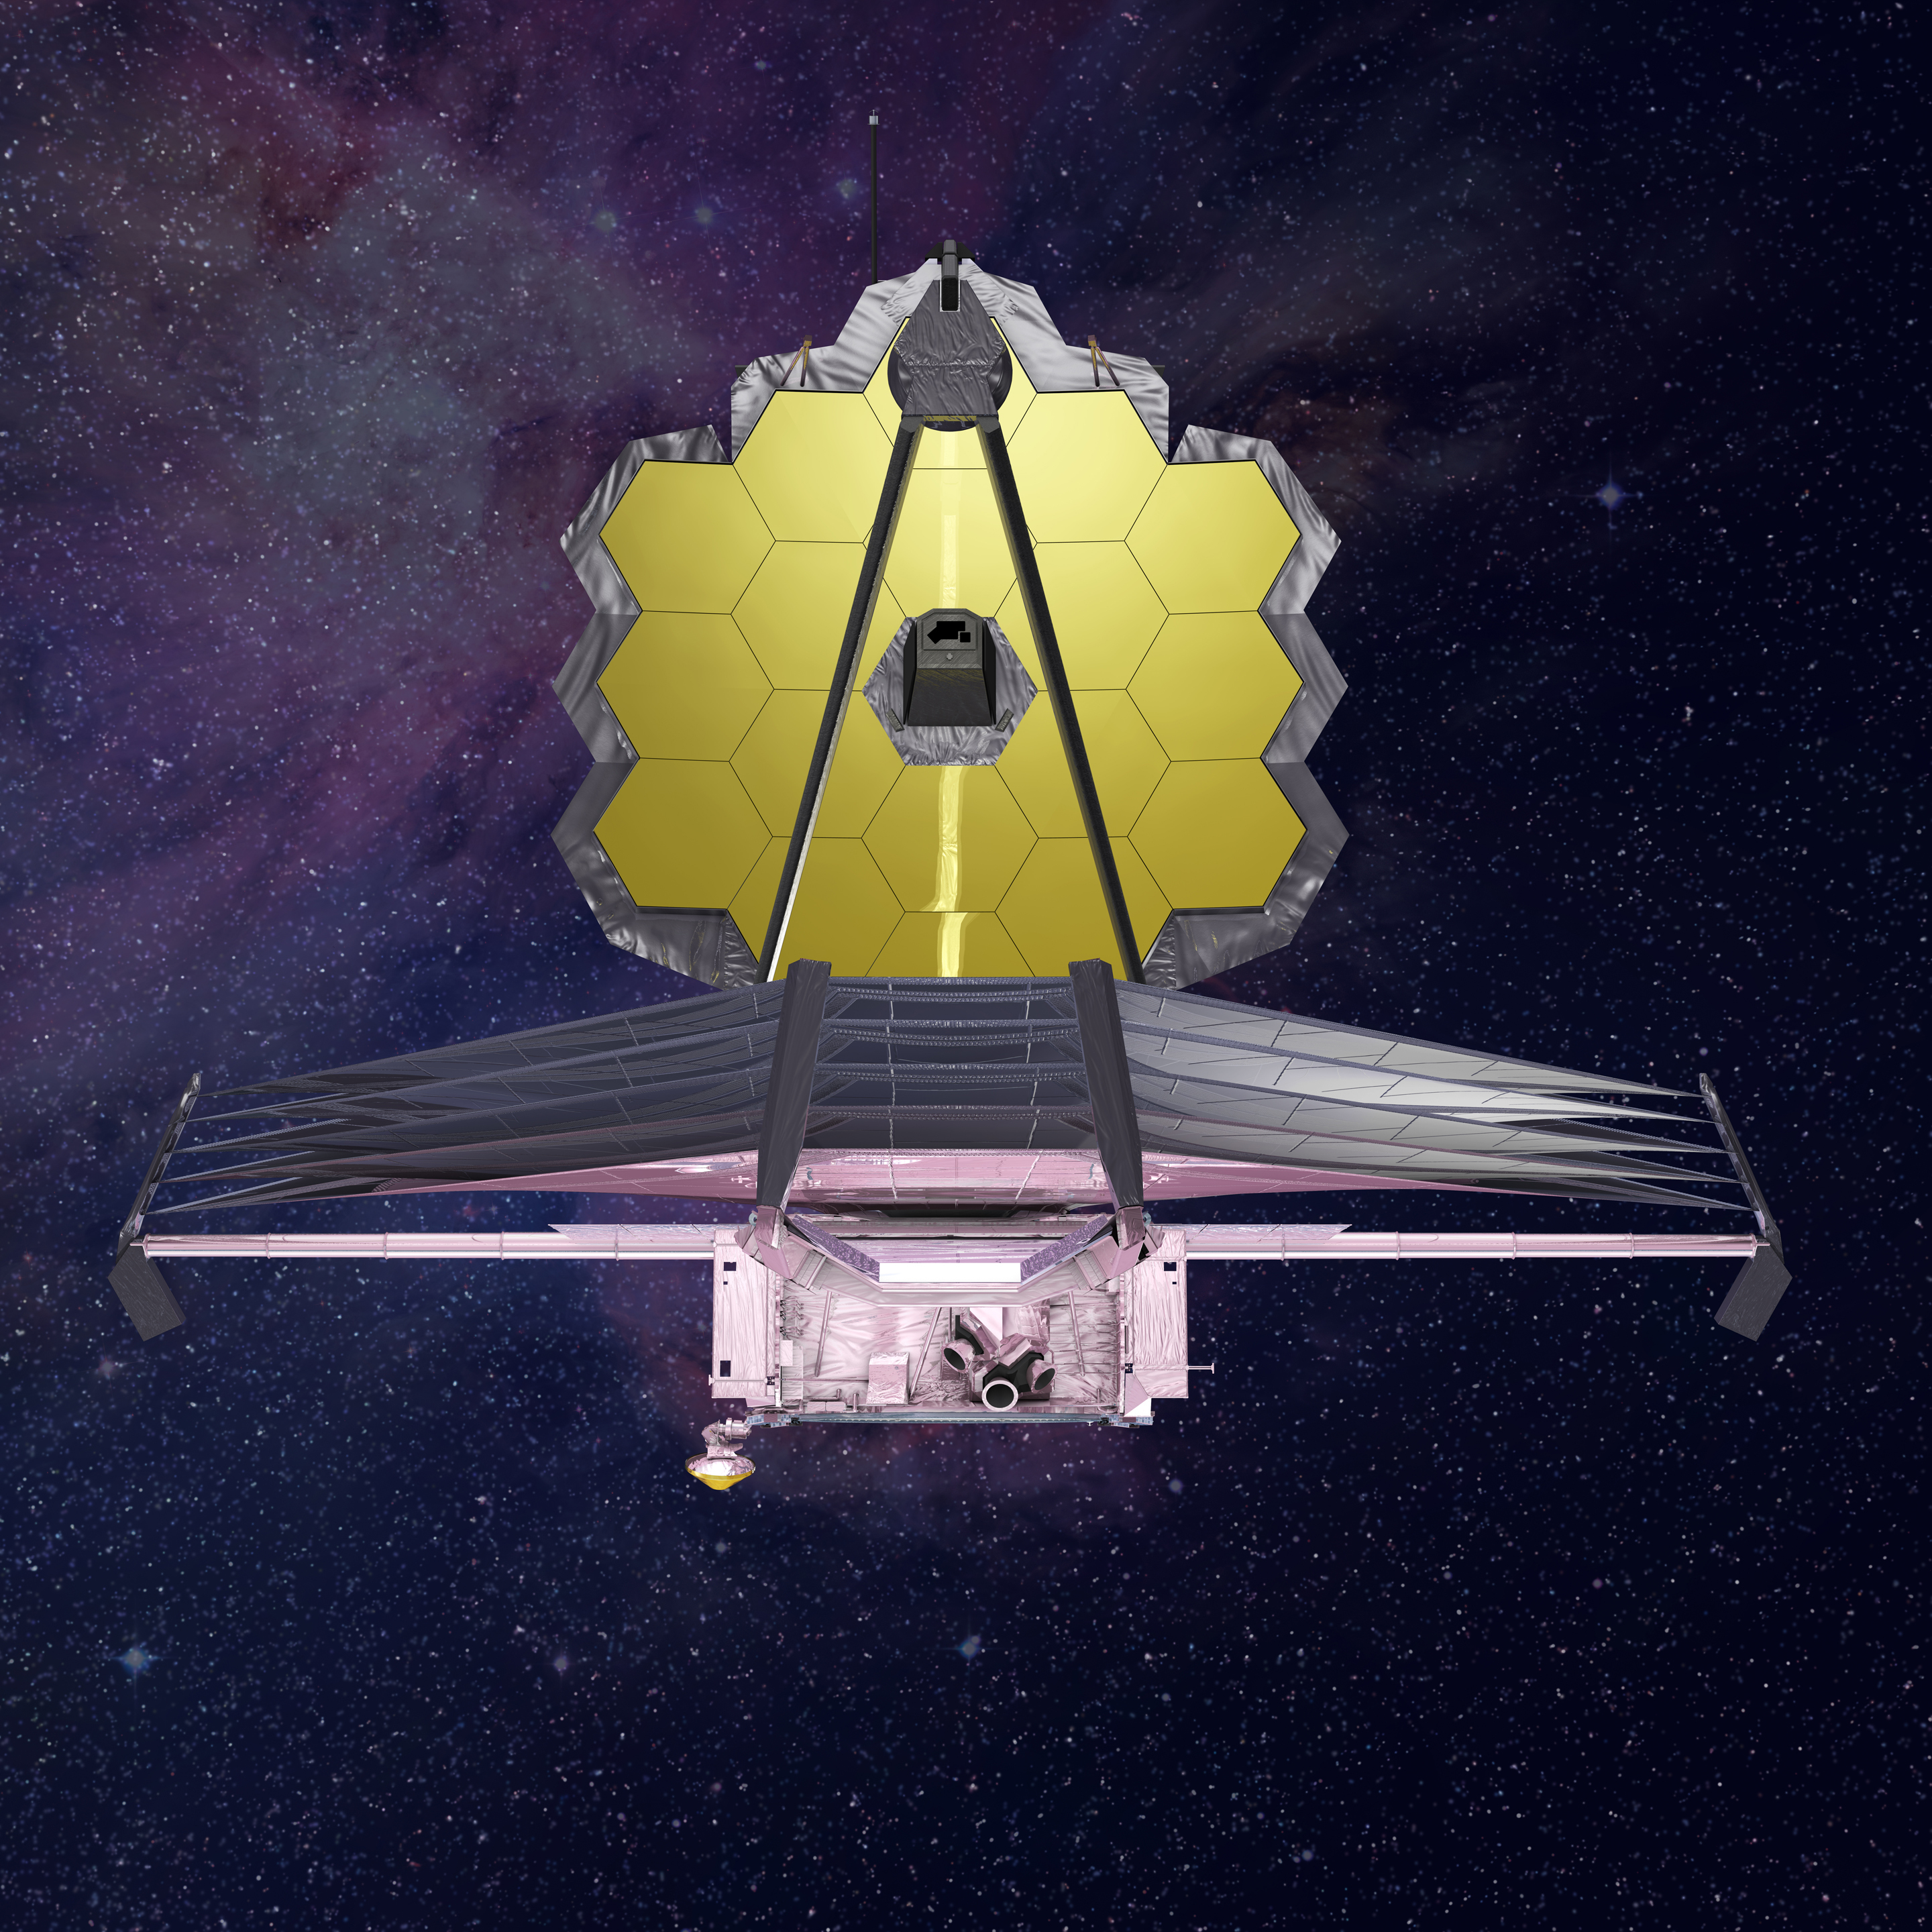 The James Webb Space Telescope, a successor to the Hubble Space Telescope, is a large, powerful infrared telescope with a 6.5-meter primary mirror that can observe distant objects in the universe.